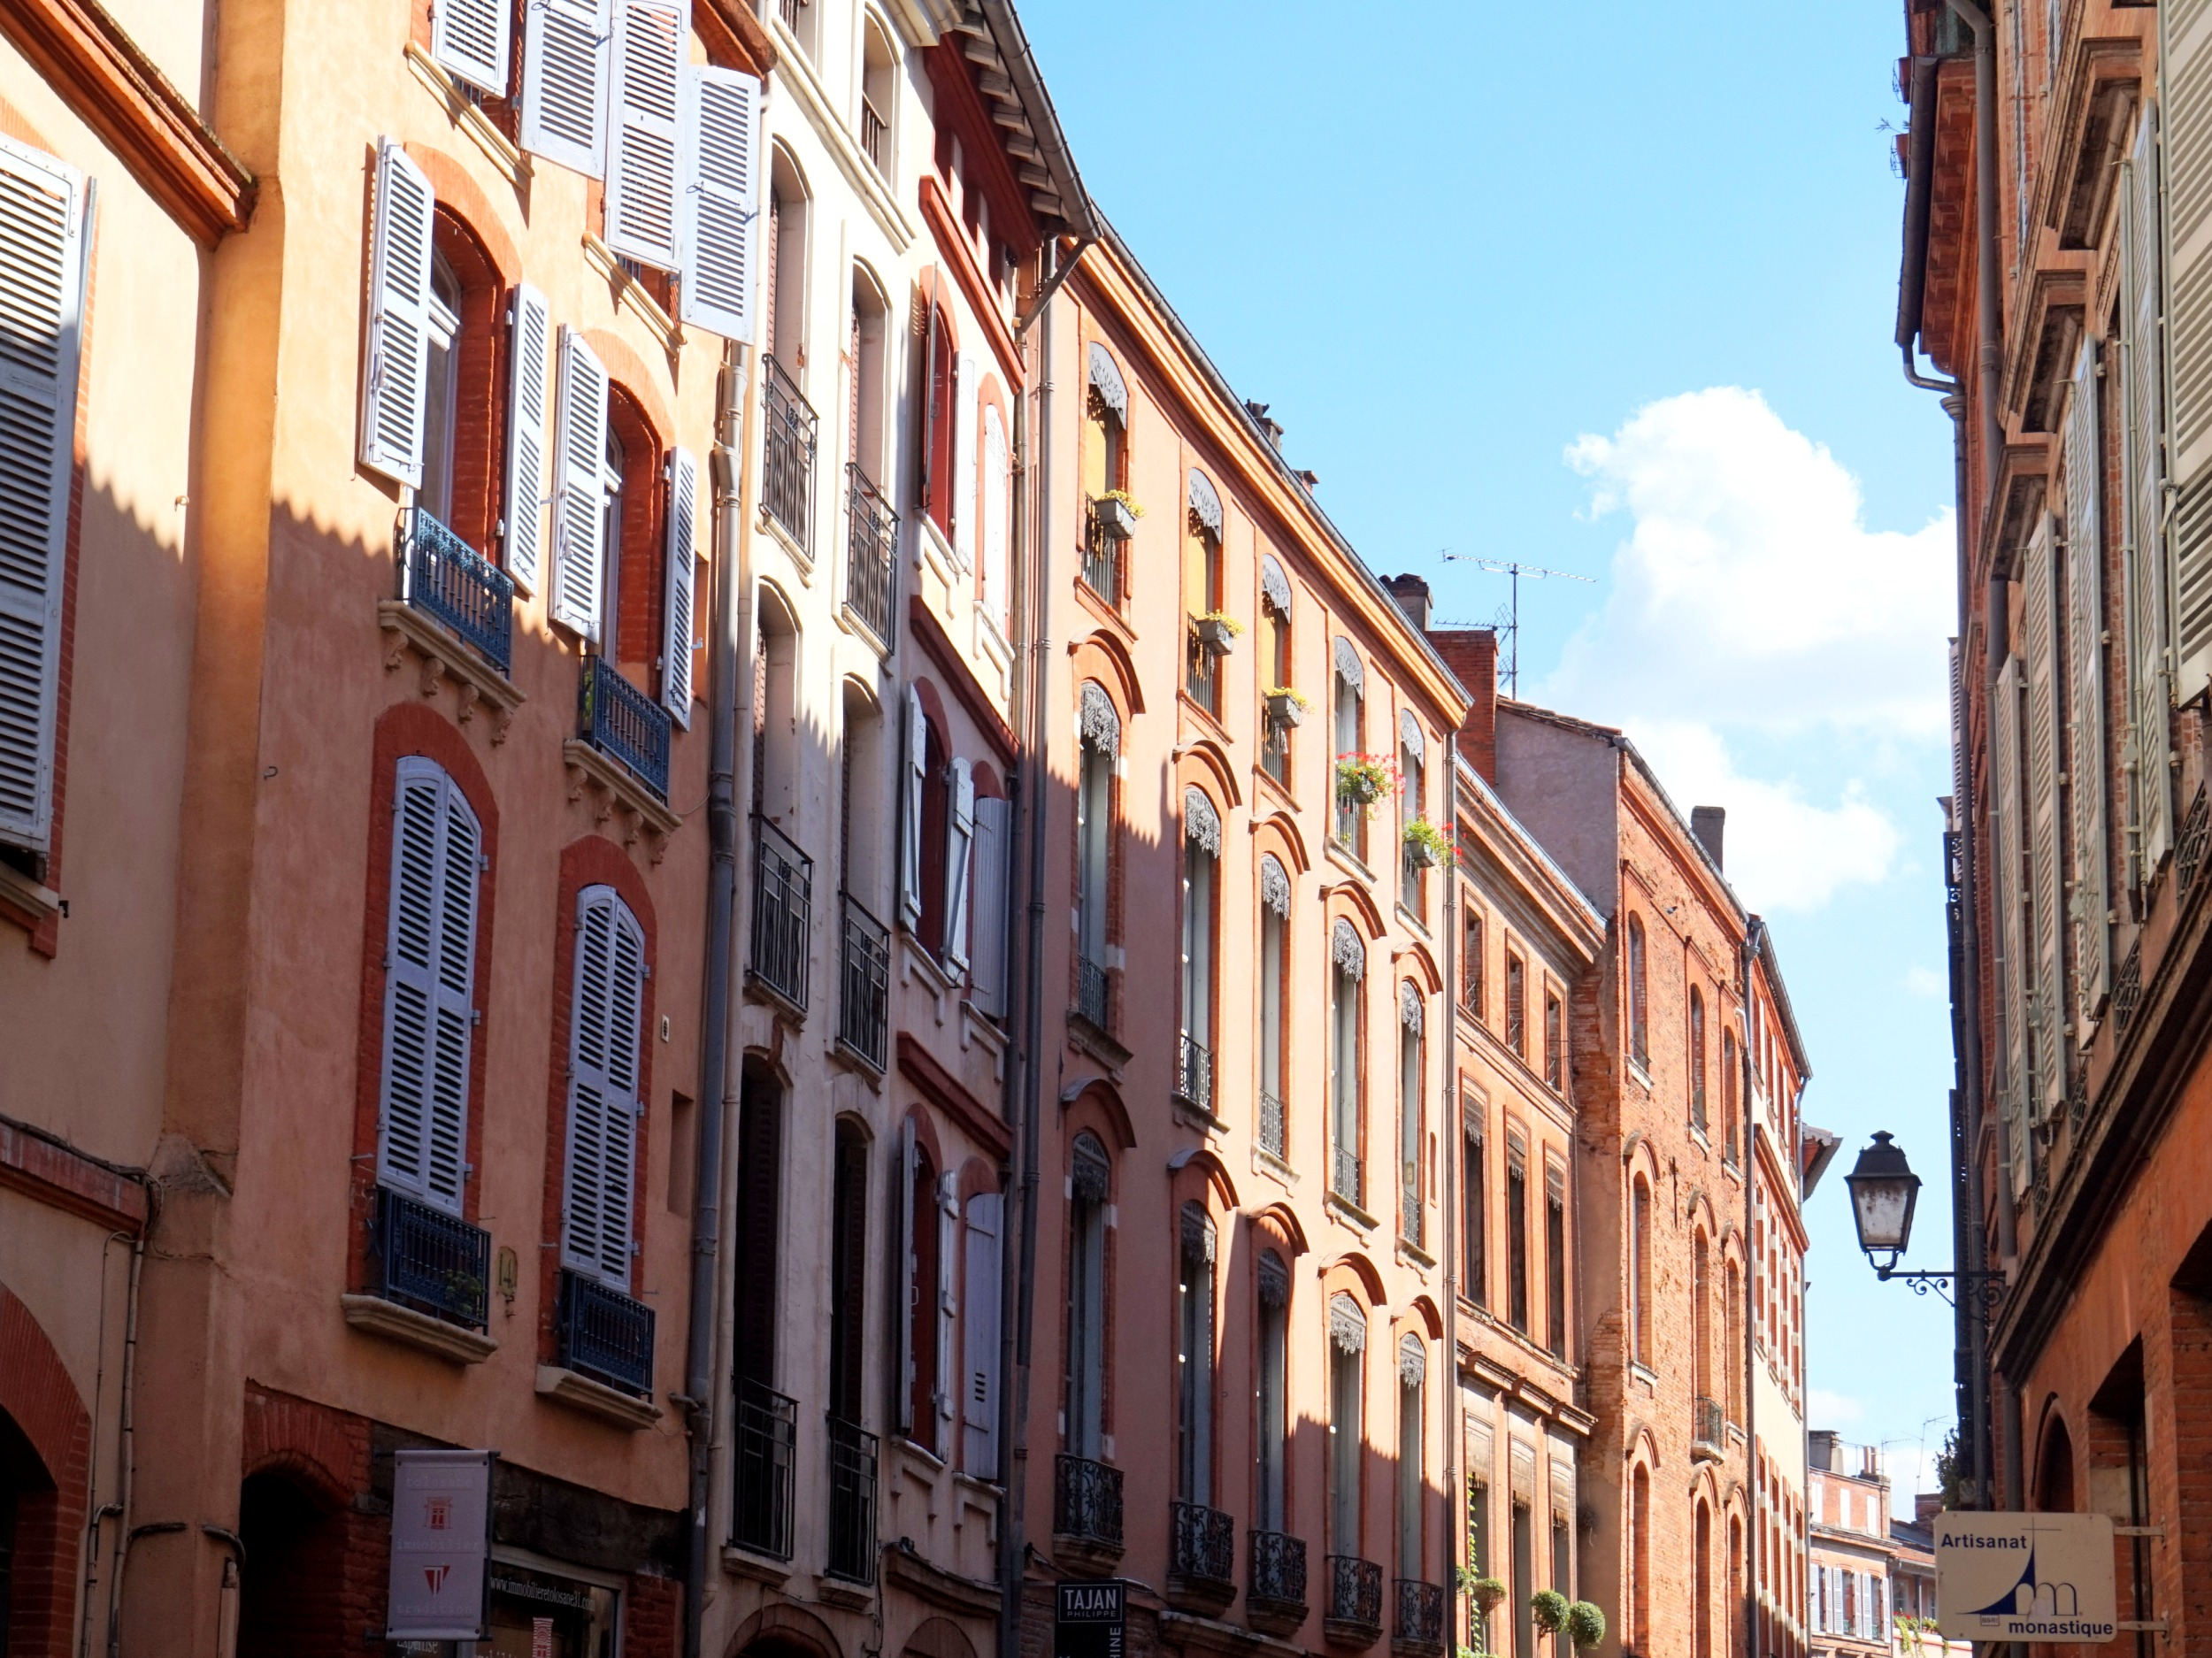 Balade-Toulouse-St-Etienne-12